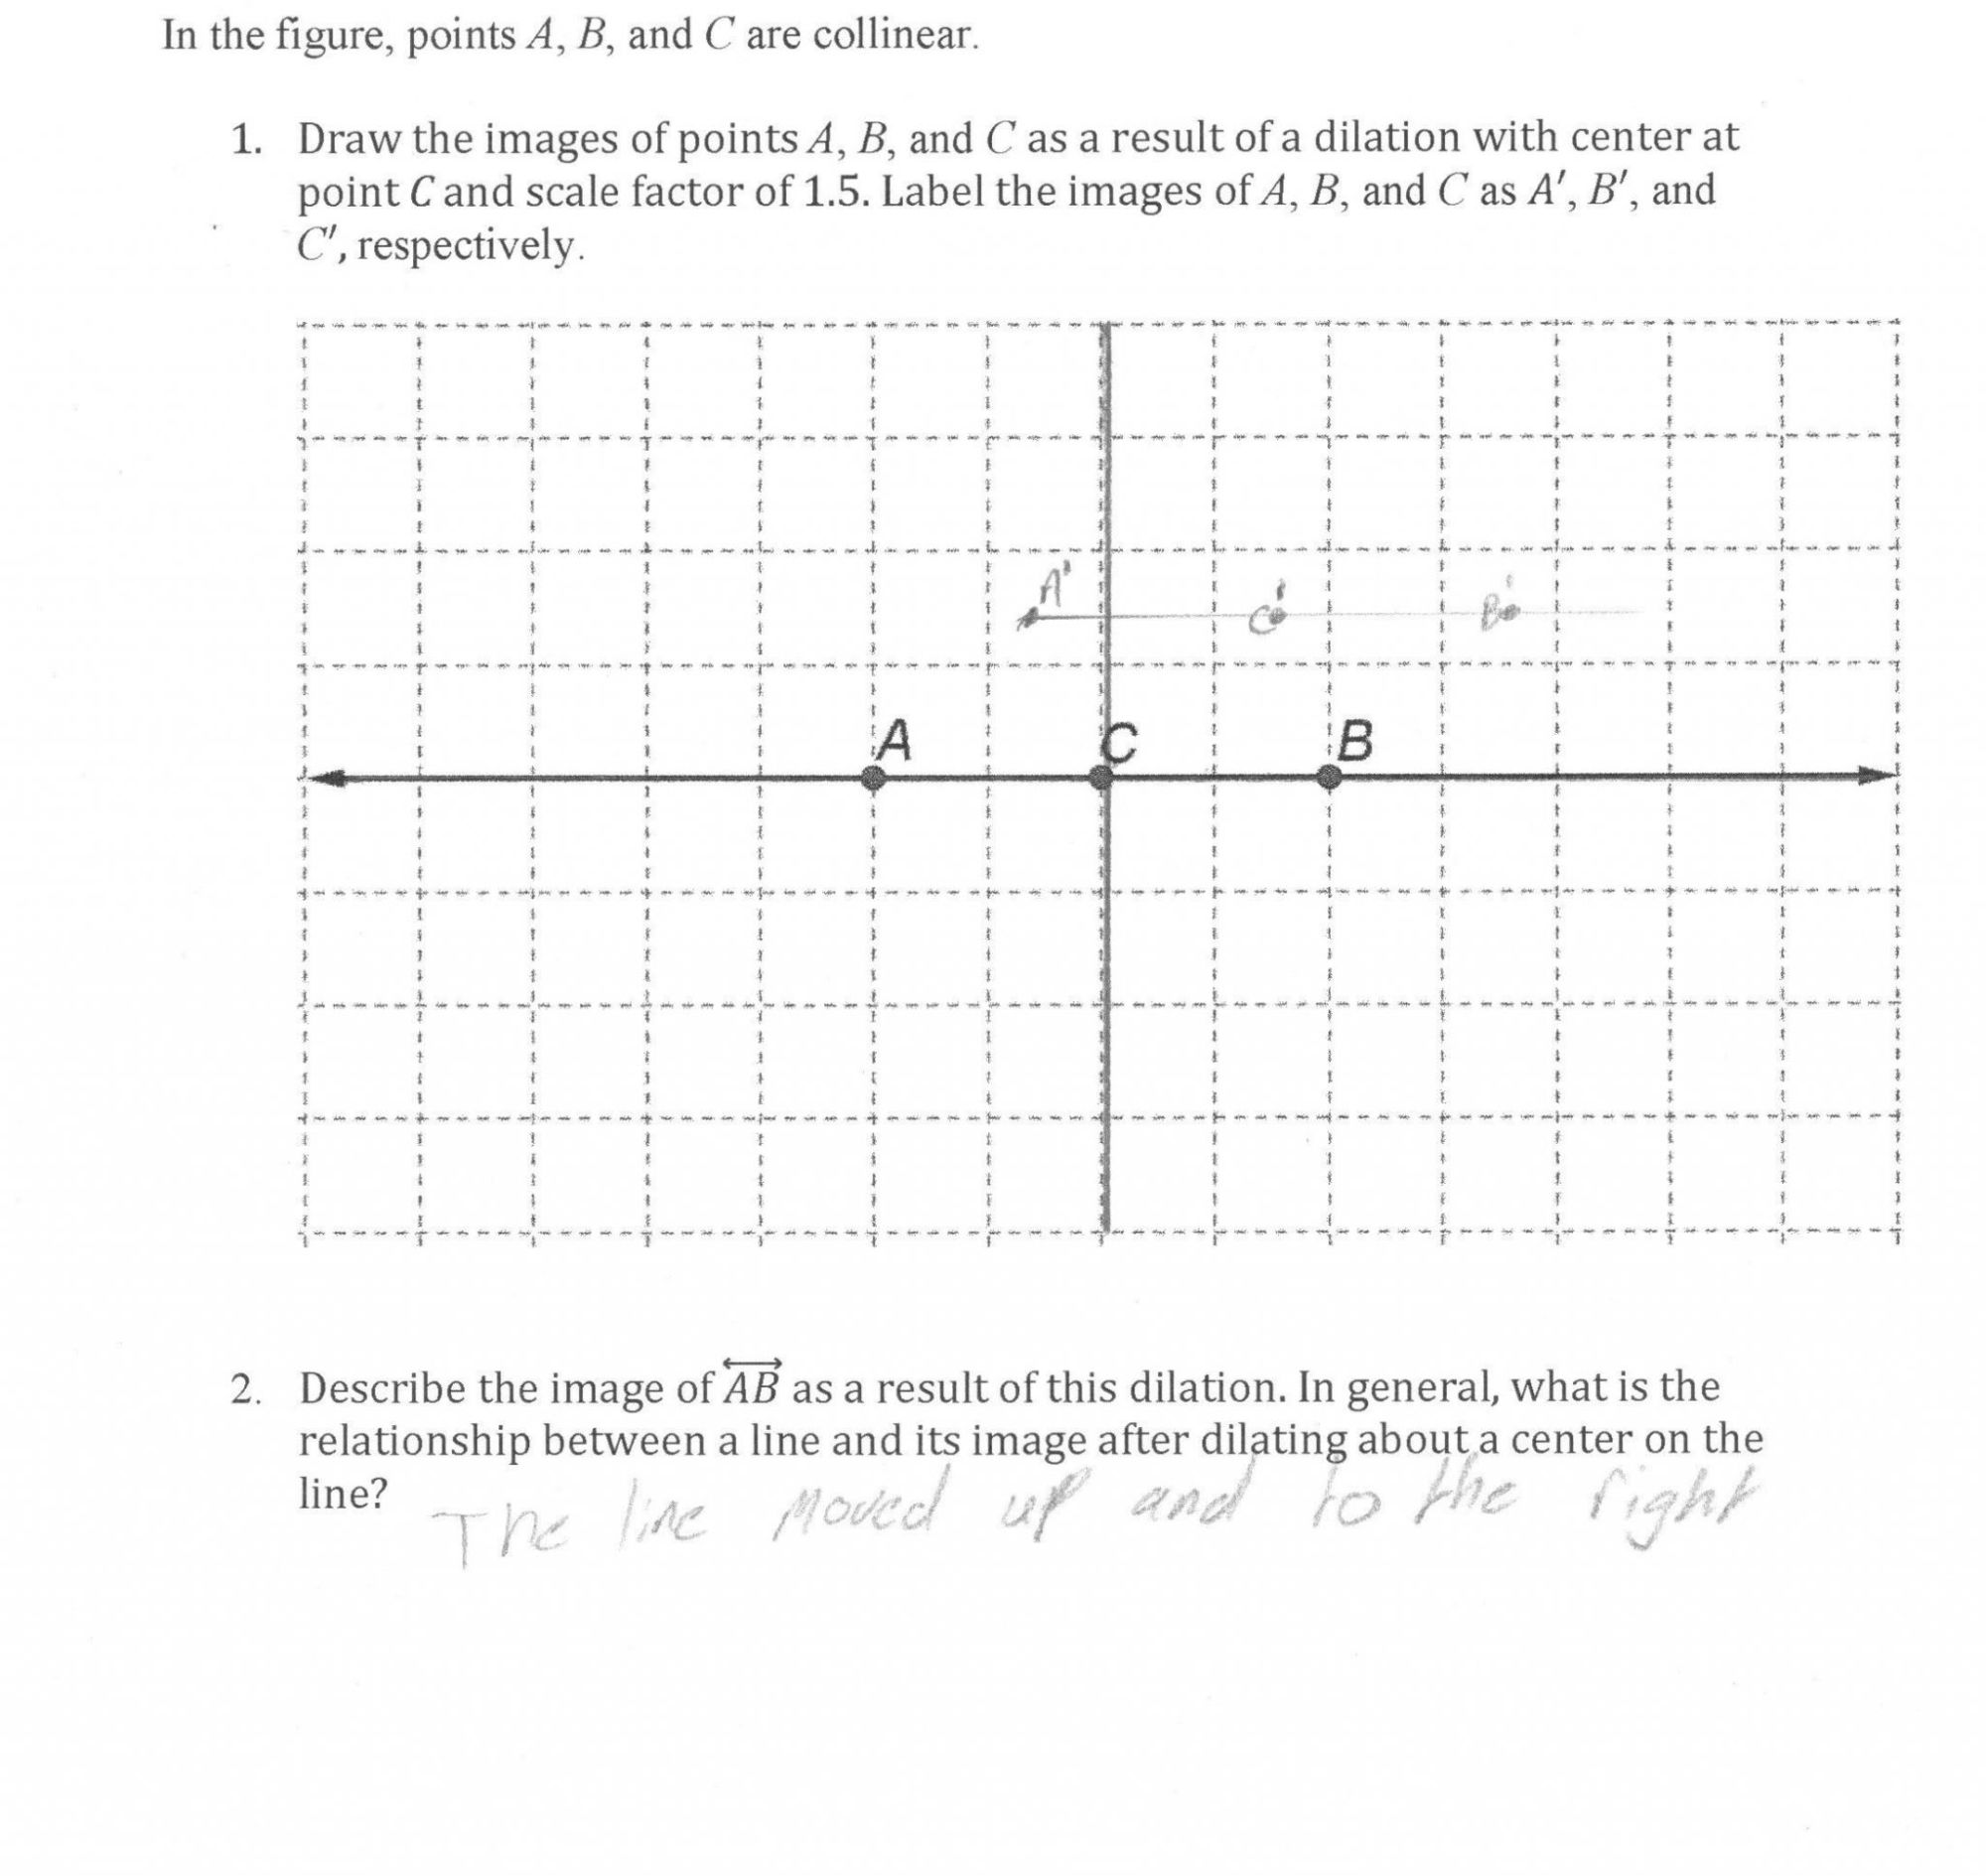 hight resolution of Dilation Worksheet Answers   Printable Worksheets and Activities for  Teachers